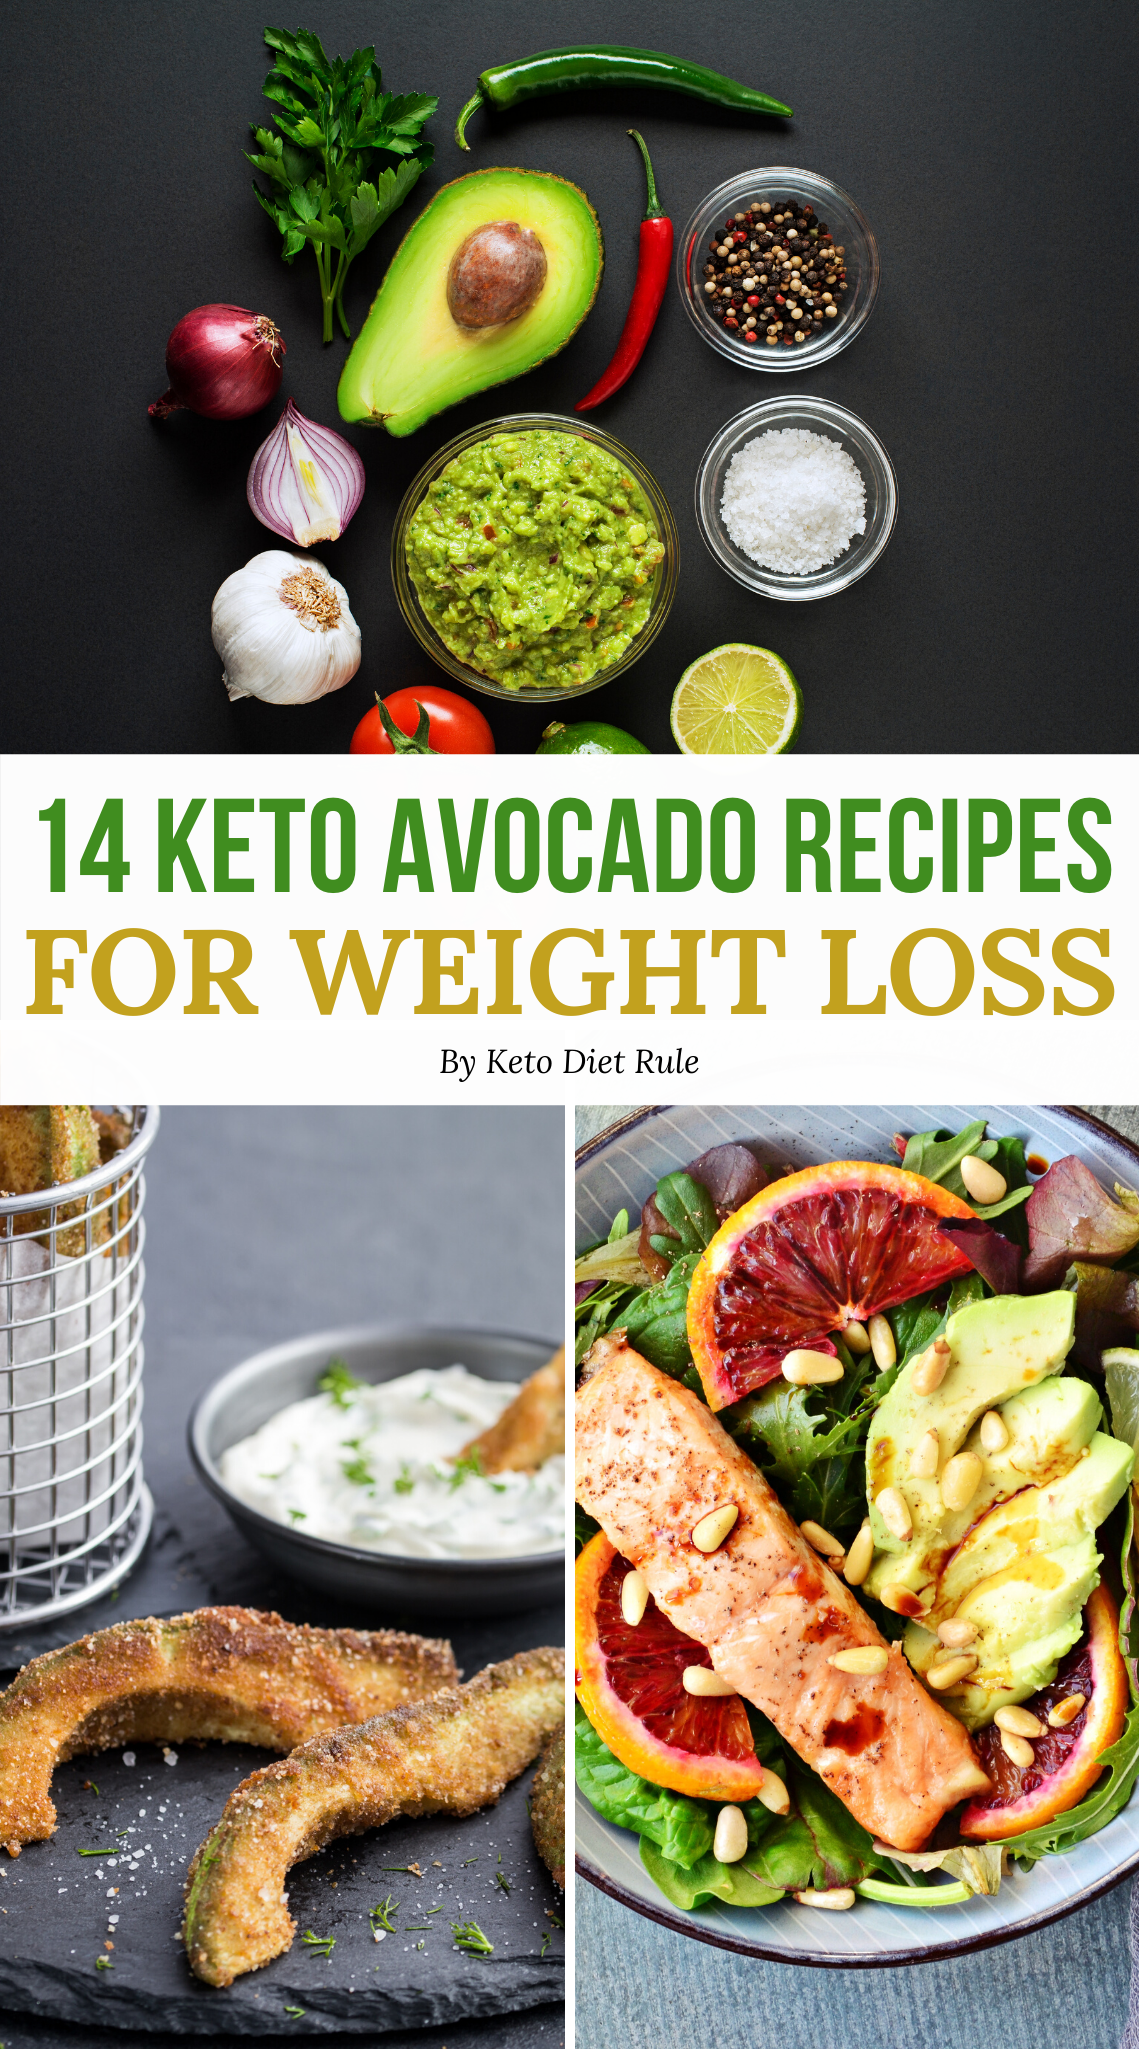 Avocado Recipes 14 Delicious Ways To Eat An Avocado Keto Diet Rule In 2020 Avocado Recipes Recipes Healthy Fats List